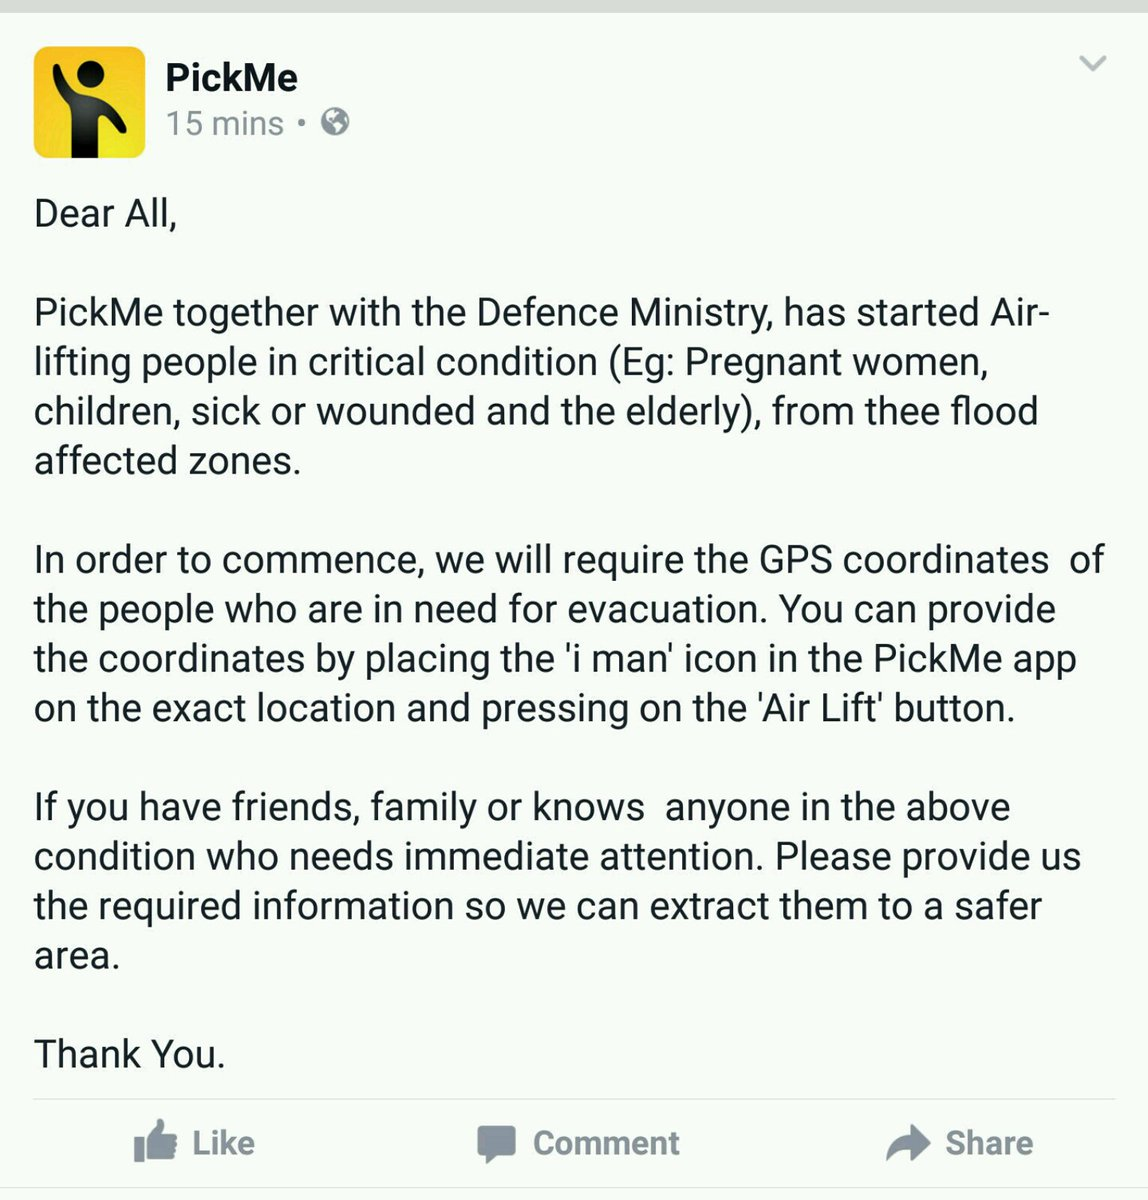 ". @PickMeLK has partnered with Air Force to airlift people in critical conditions. Use ""Air Lift"" button to request. https://t.co/I0cNvKIUrJ"